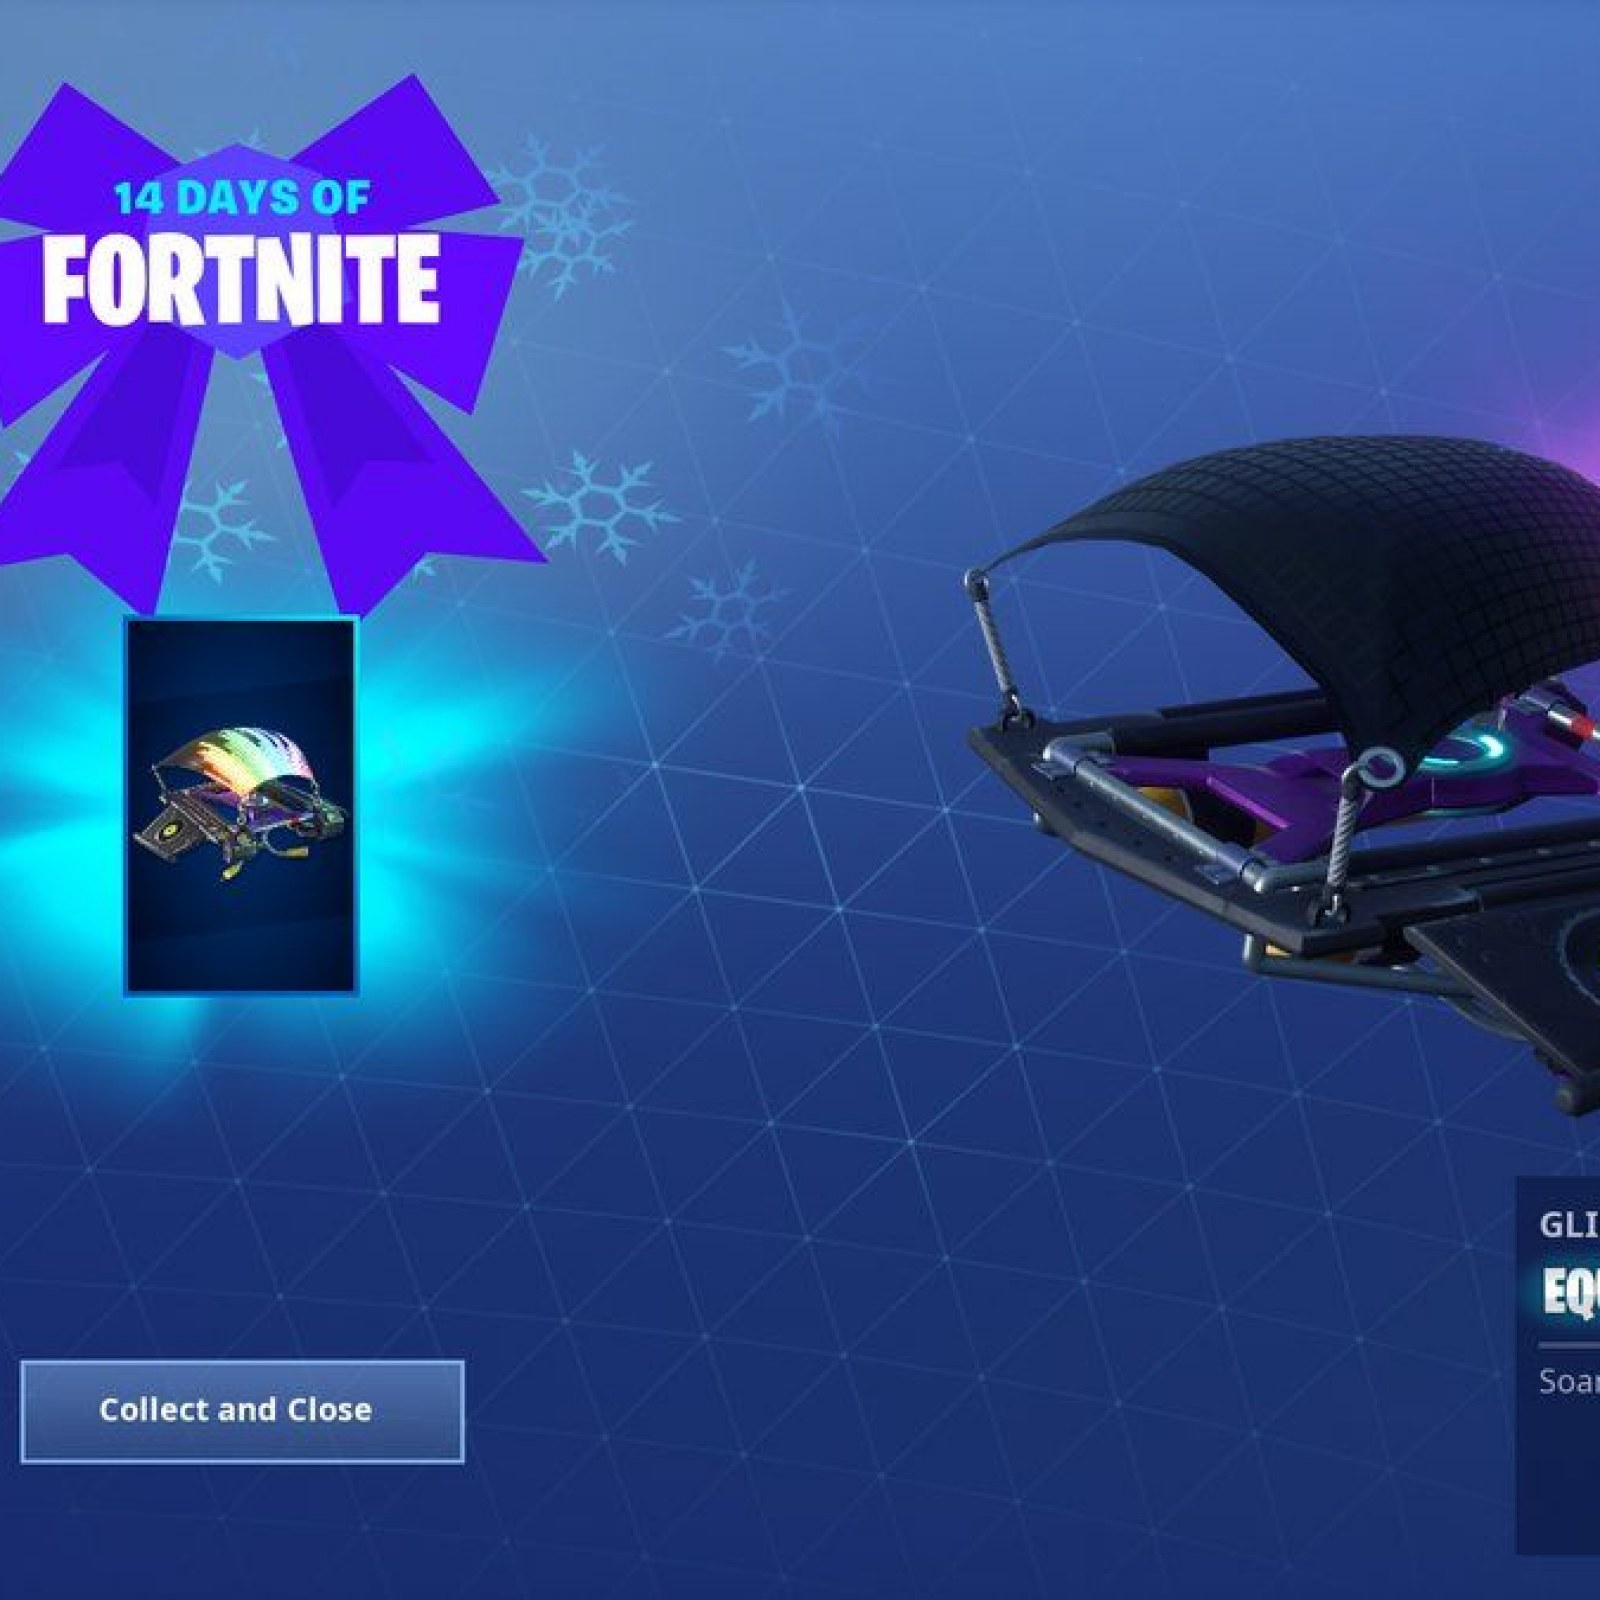 14 Days of 'Fortnite Chest Locations: Last Day Earns Equalizer Glider